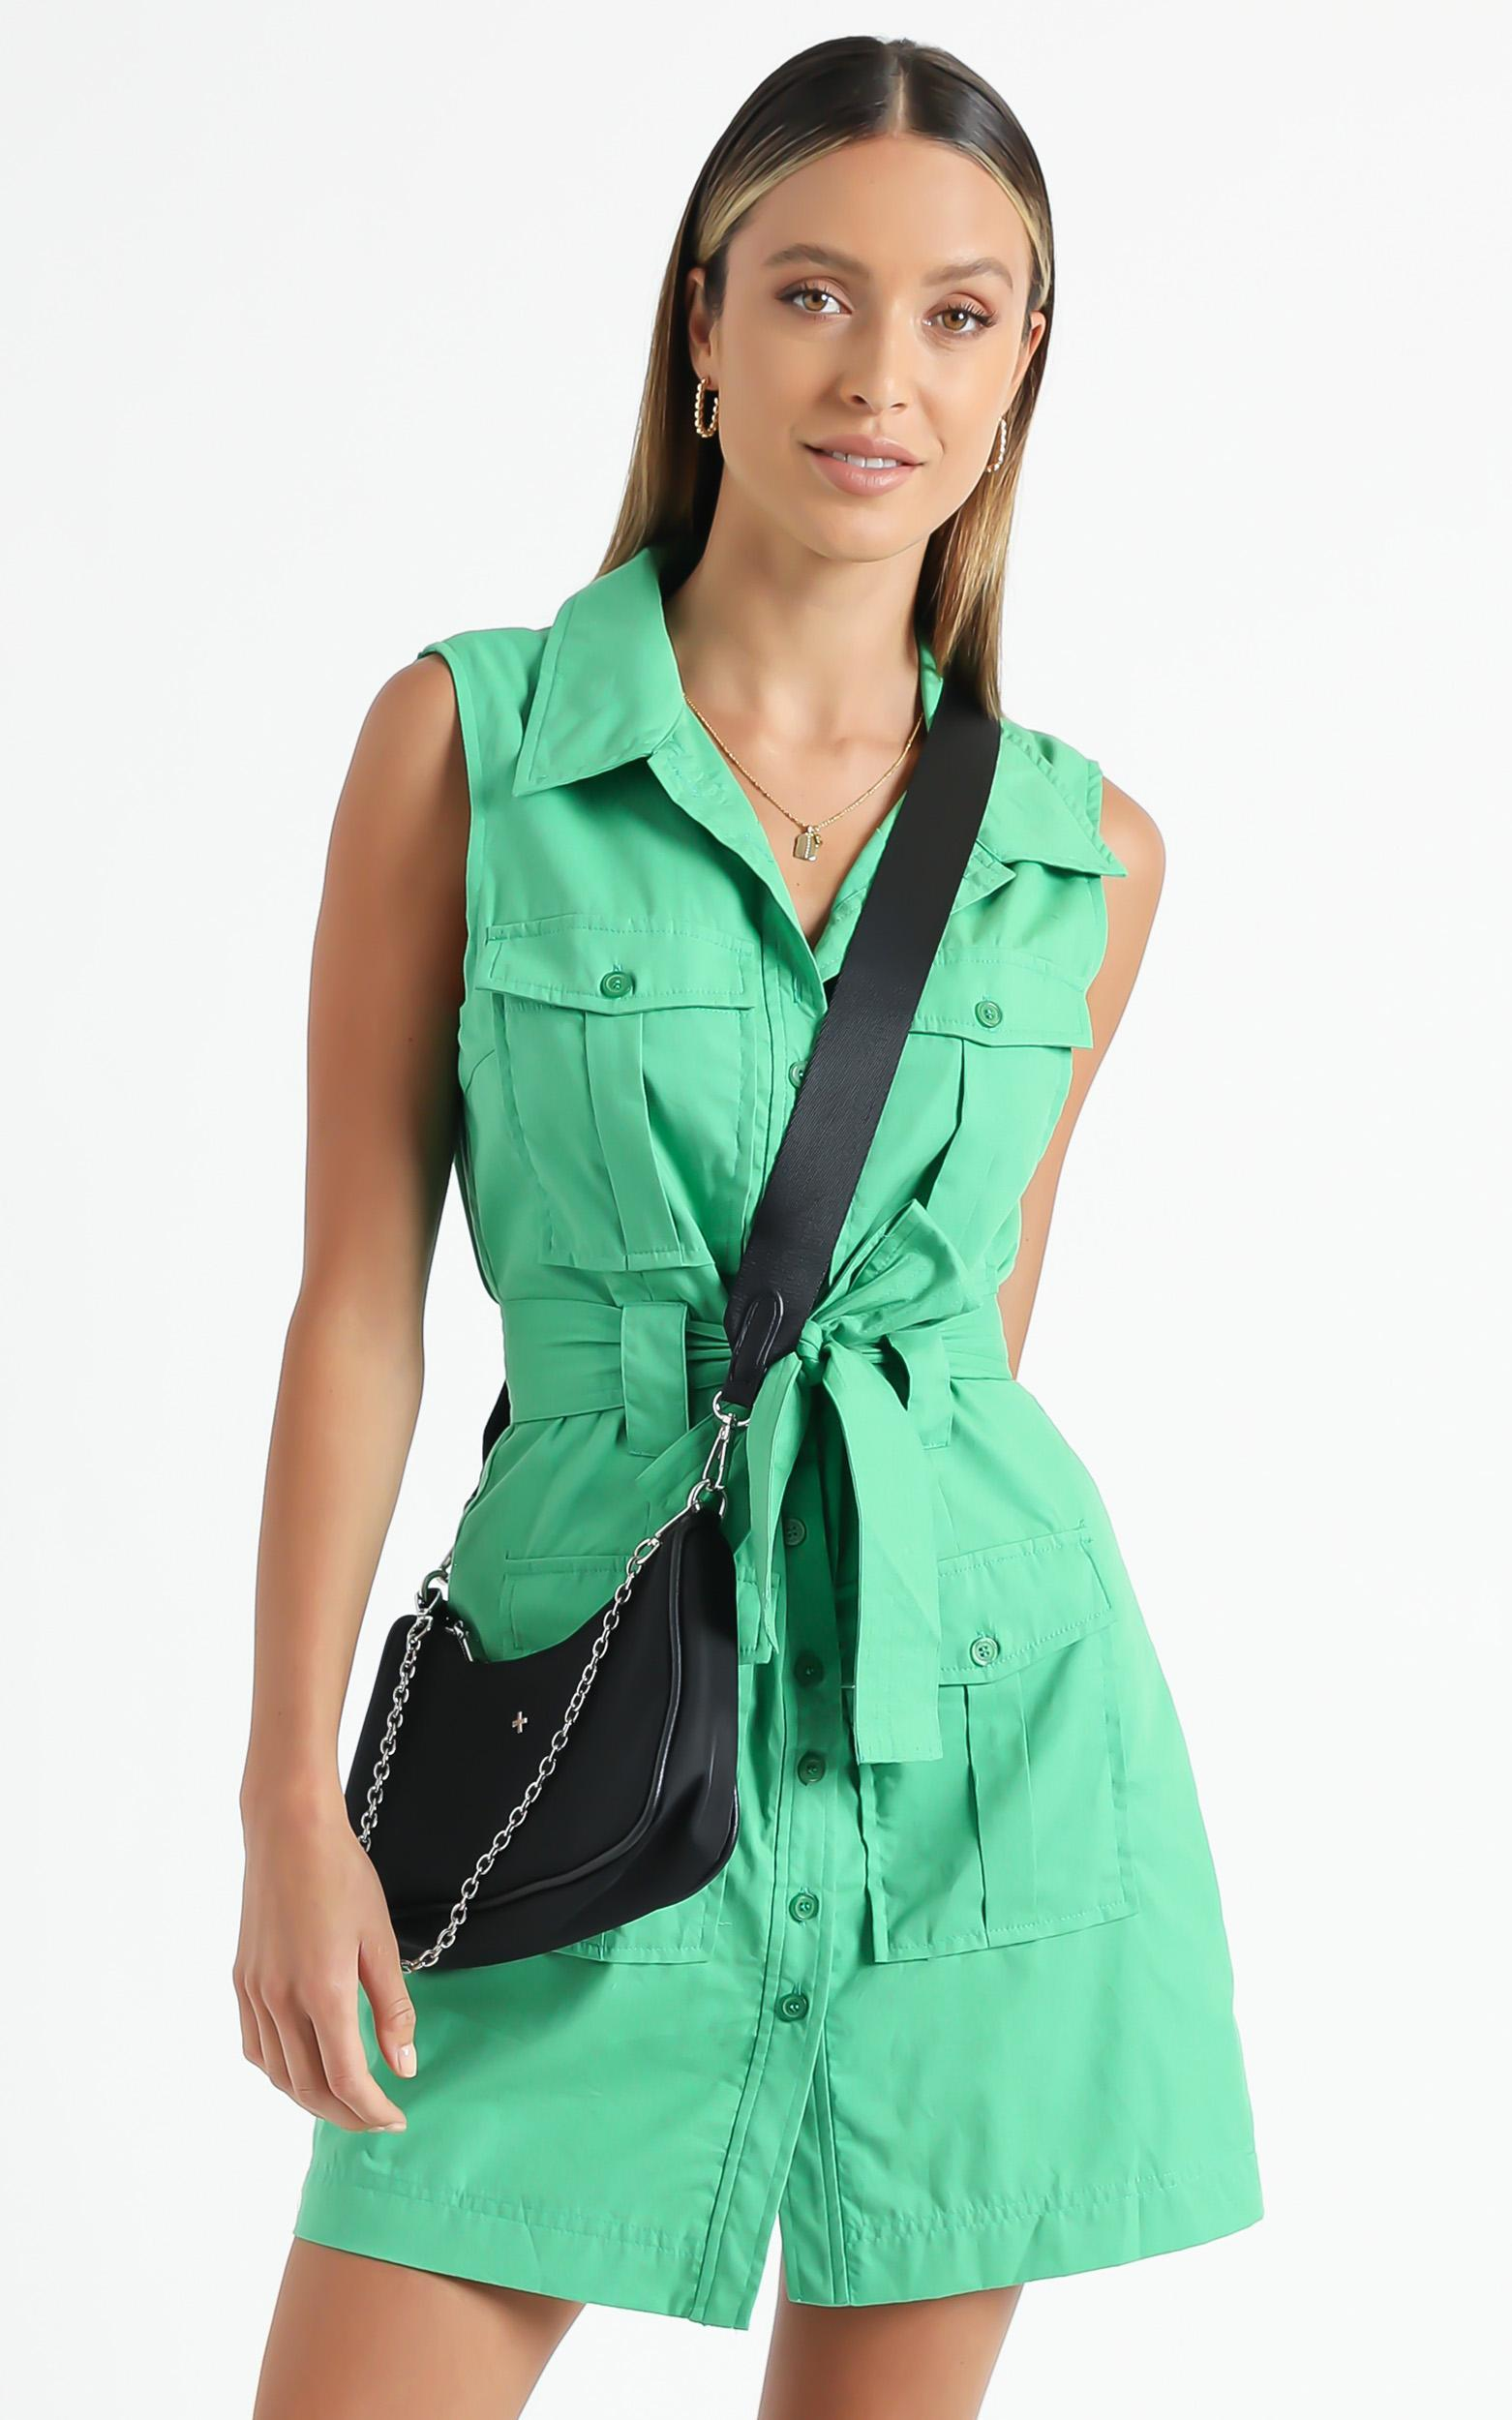 Turbina Dress in Green - 6 (XS), Green, hi-res image number null